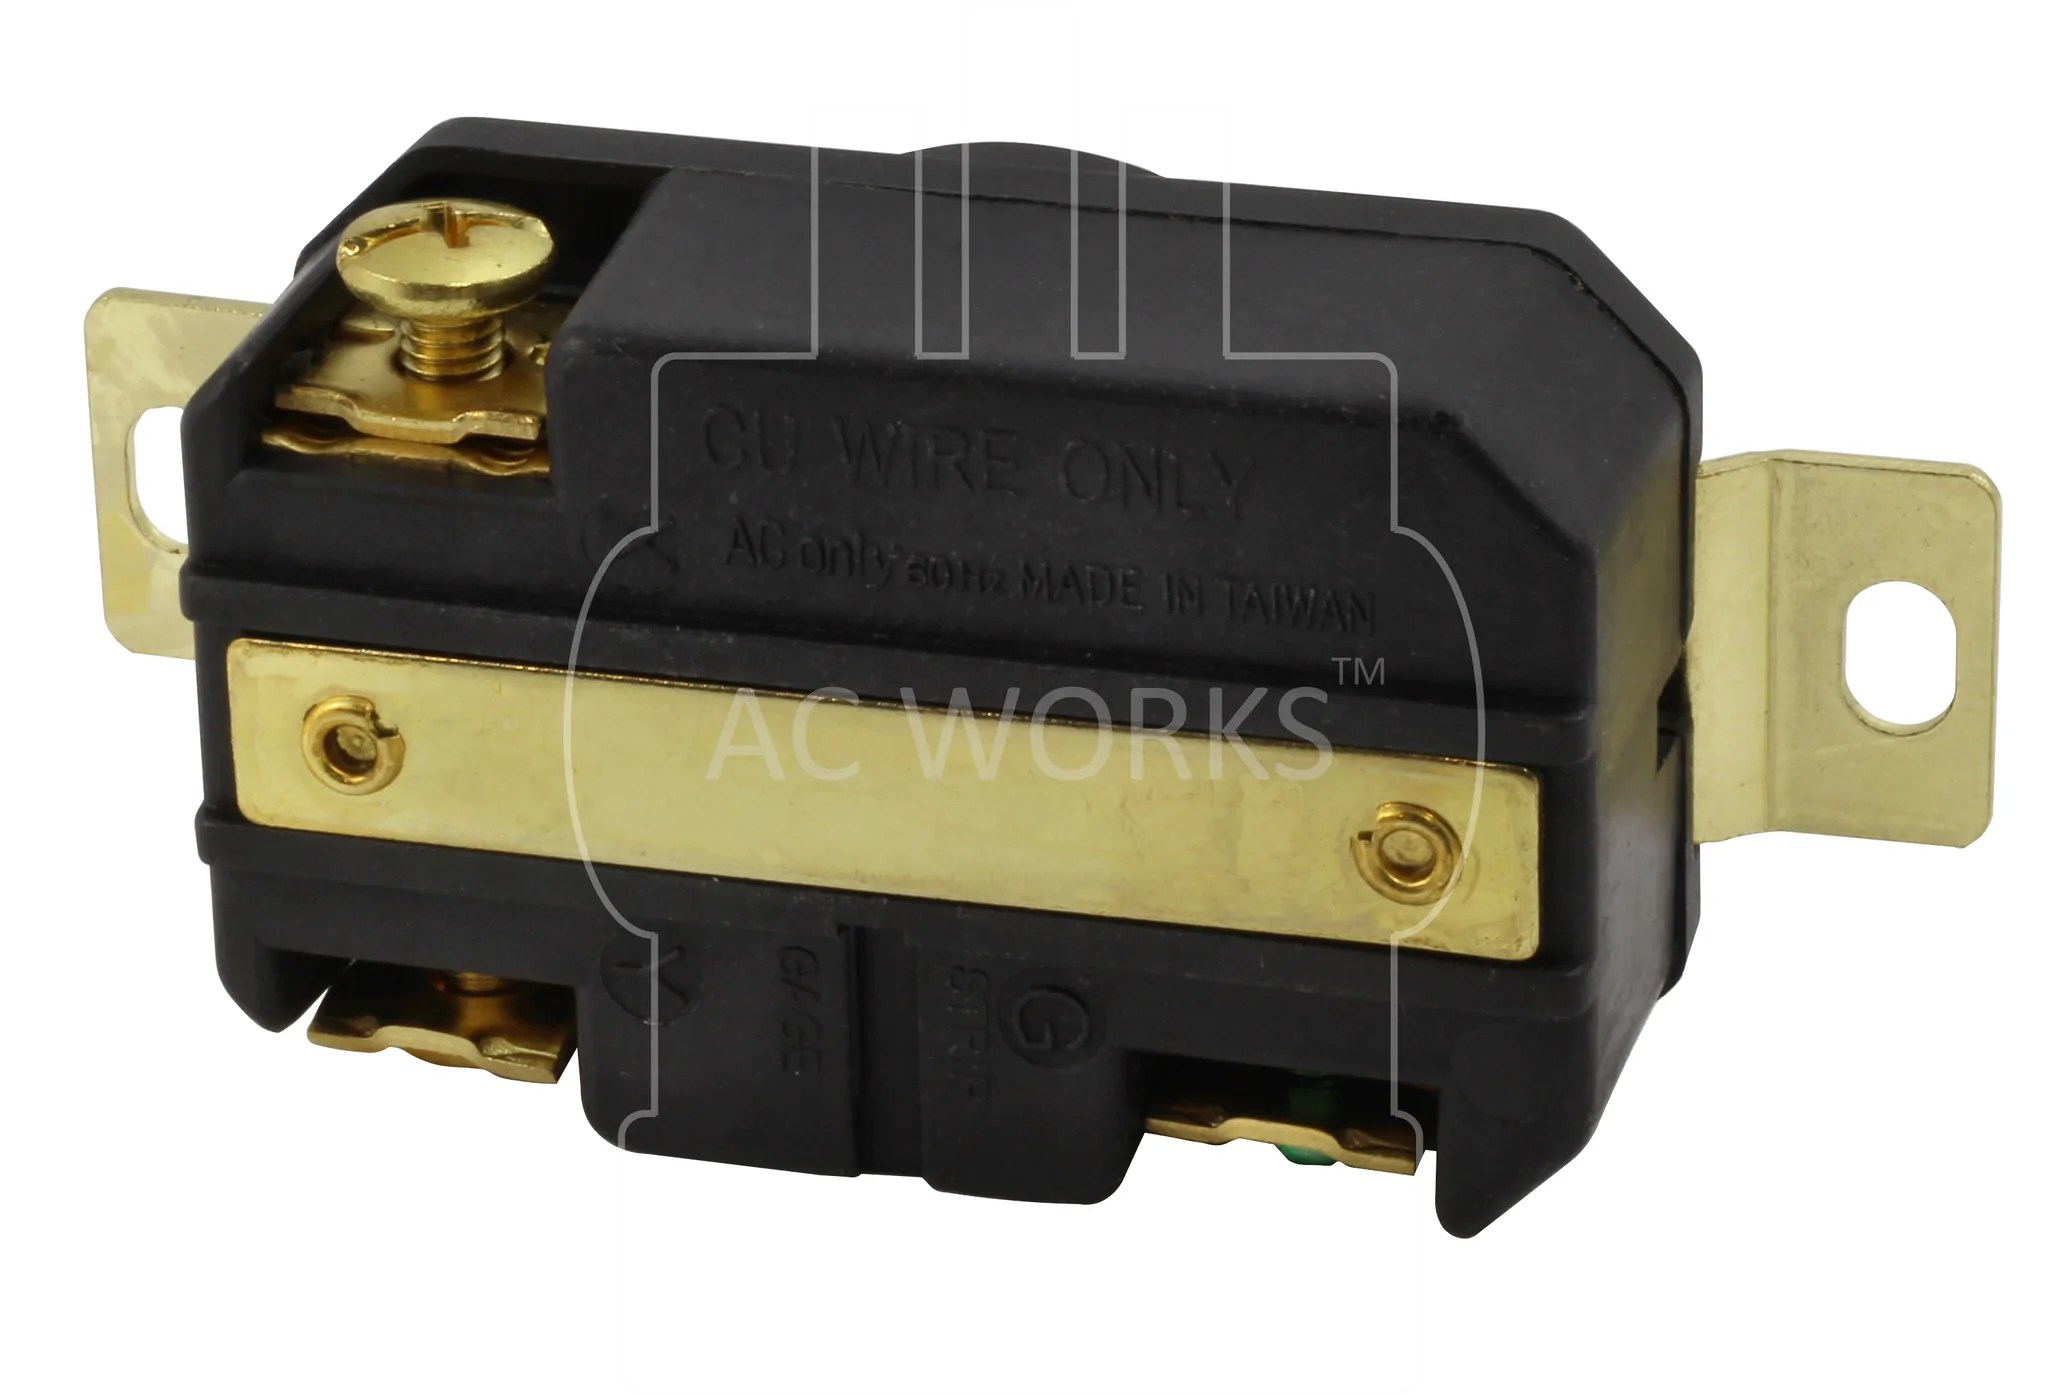 fml620r ac works ac connectors flush mounting locking receptacle  [ 2048 x 1395 Pixel ]